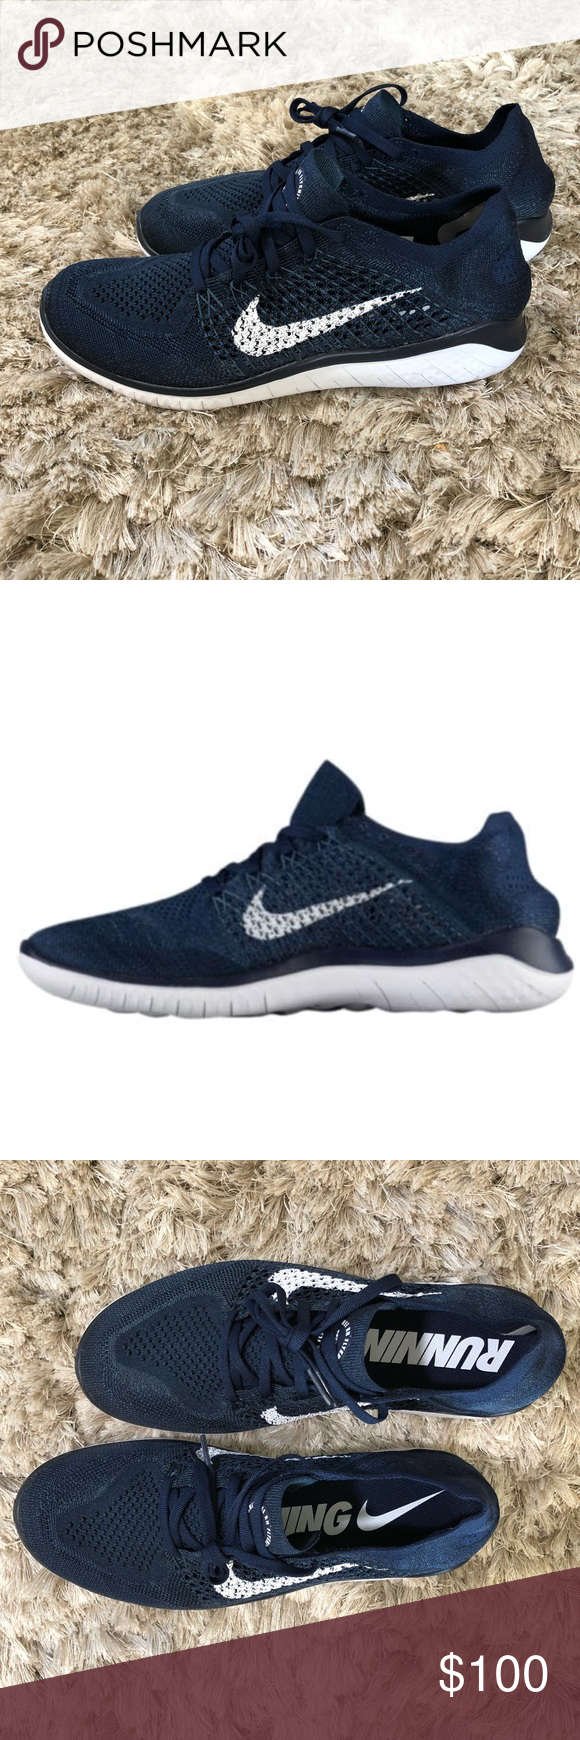 """3a4383ce0af NIKE FREE RN FLYKNIT 2018 - MEN S BRAND NEW! Style is Nike Free RN Flyknit  in """"College Navy White Squadron Blue"""". Never worn! Currently retails for   120 ..."""